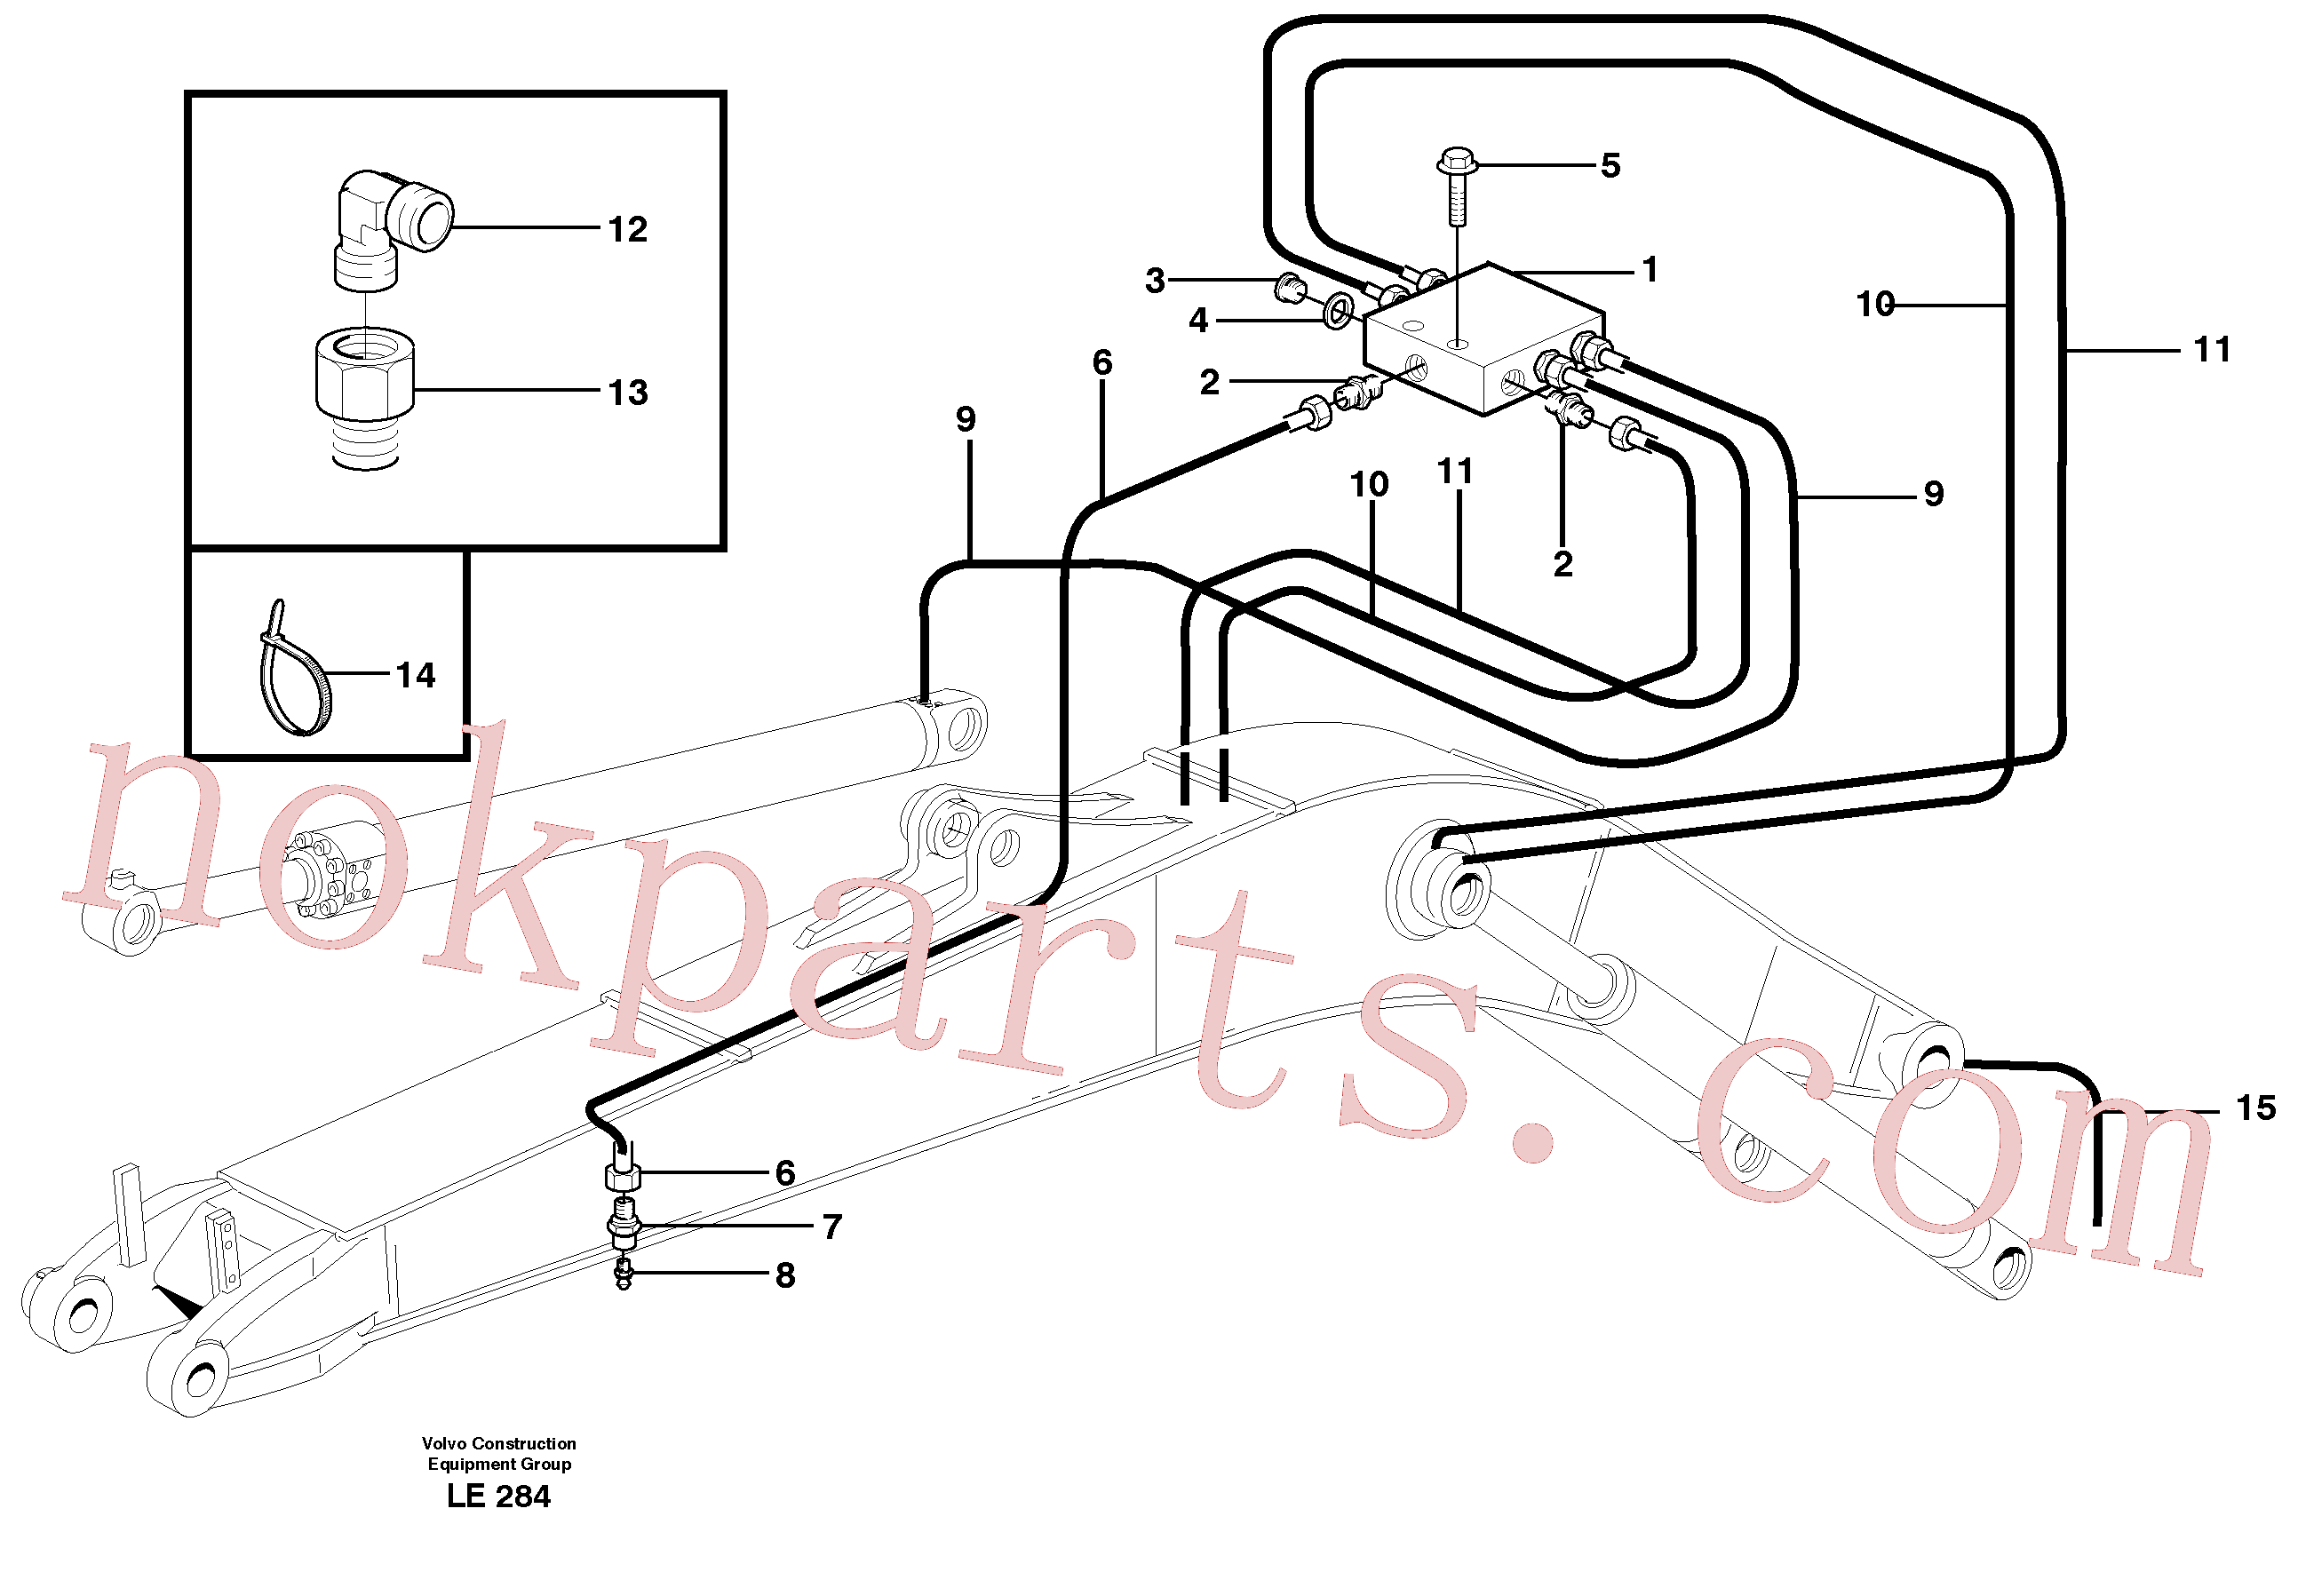 VOE14371972 for Volvo Central lubrication, mono boom(LE284 assembly)